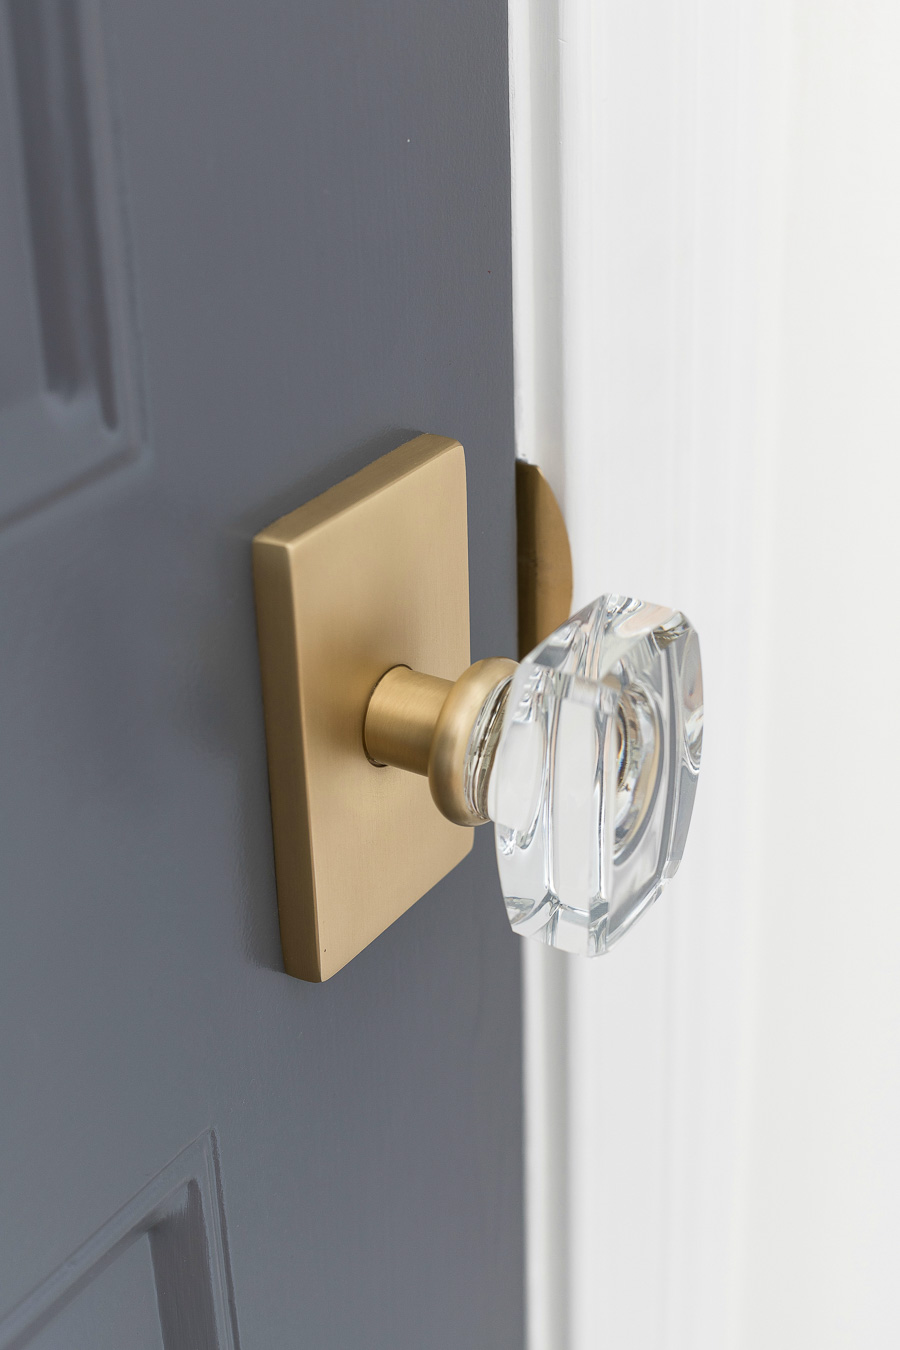 GORGEOUS door hardware! Love the combination of the crystal knob with the rectangular brass rosette! Source linked in post!